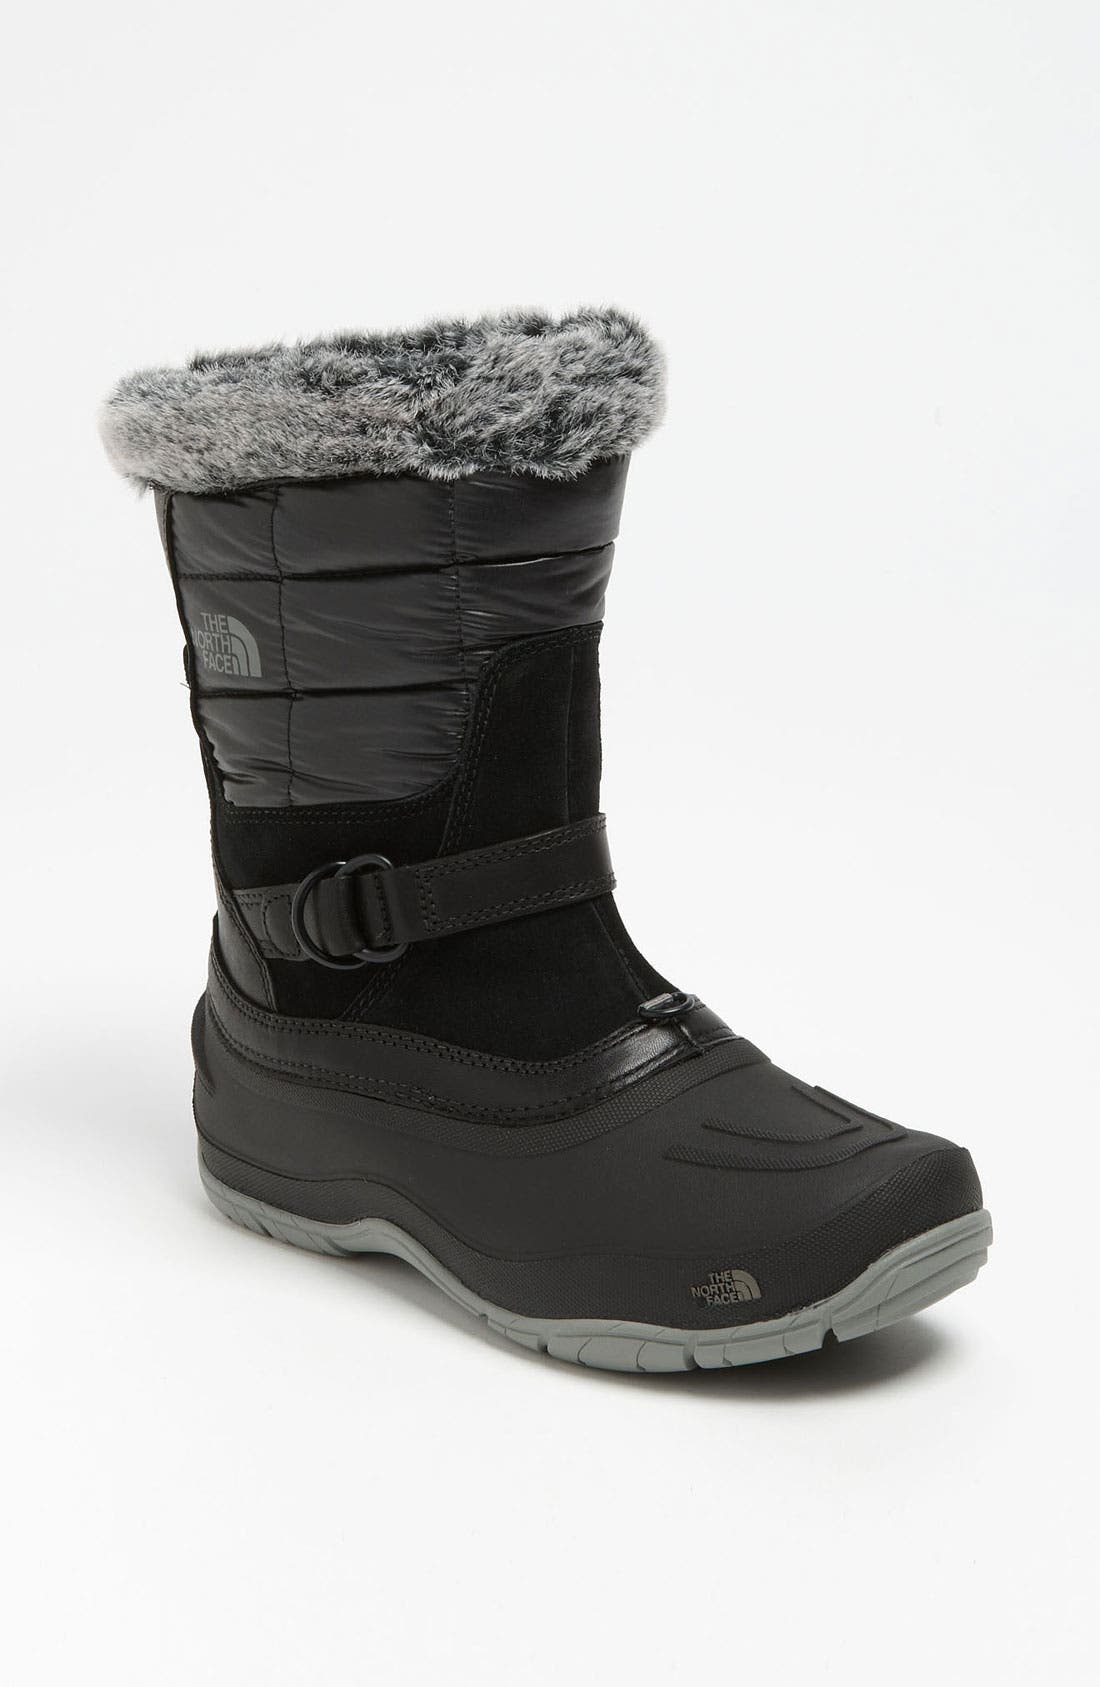 Alternate Image 1 Selected - The North Face 'Shellista' Boot